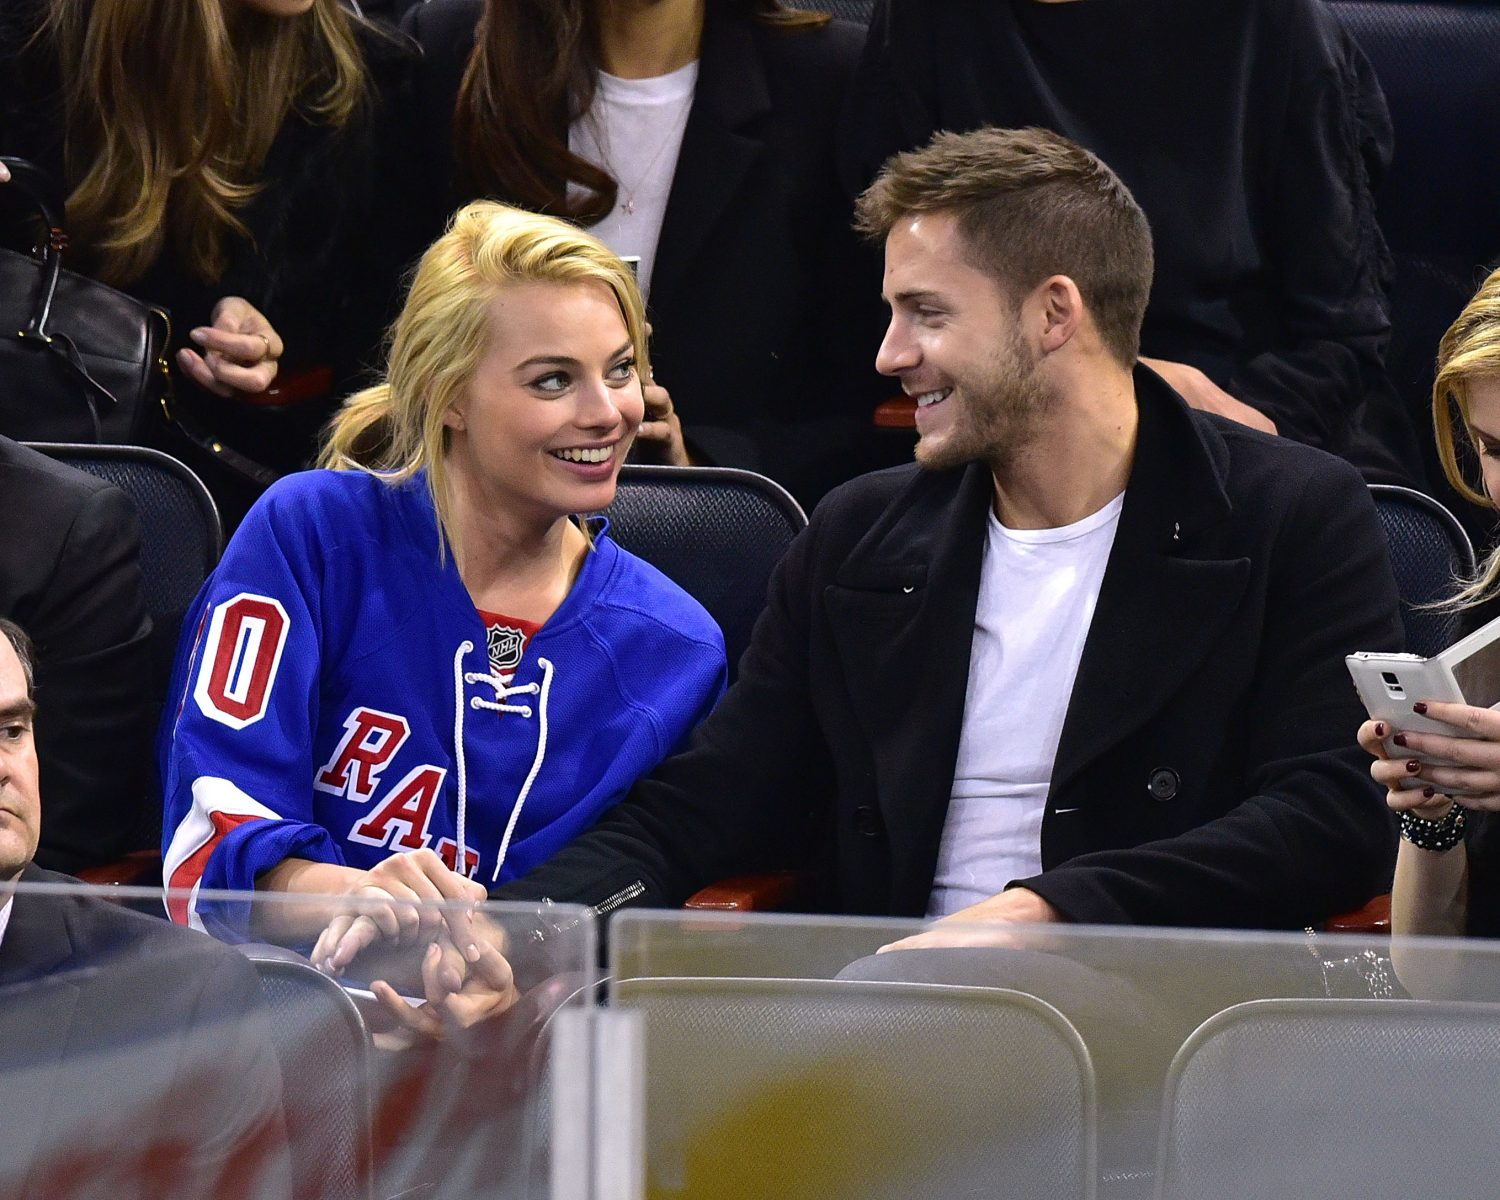 Margot Robbie Secretly Marries Tom Ackerley In Australia